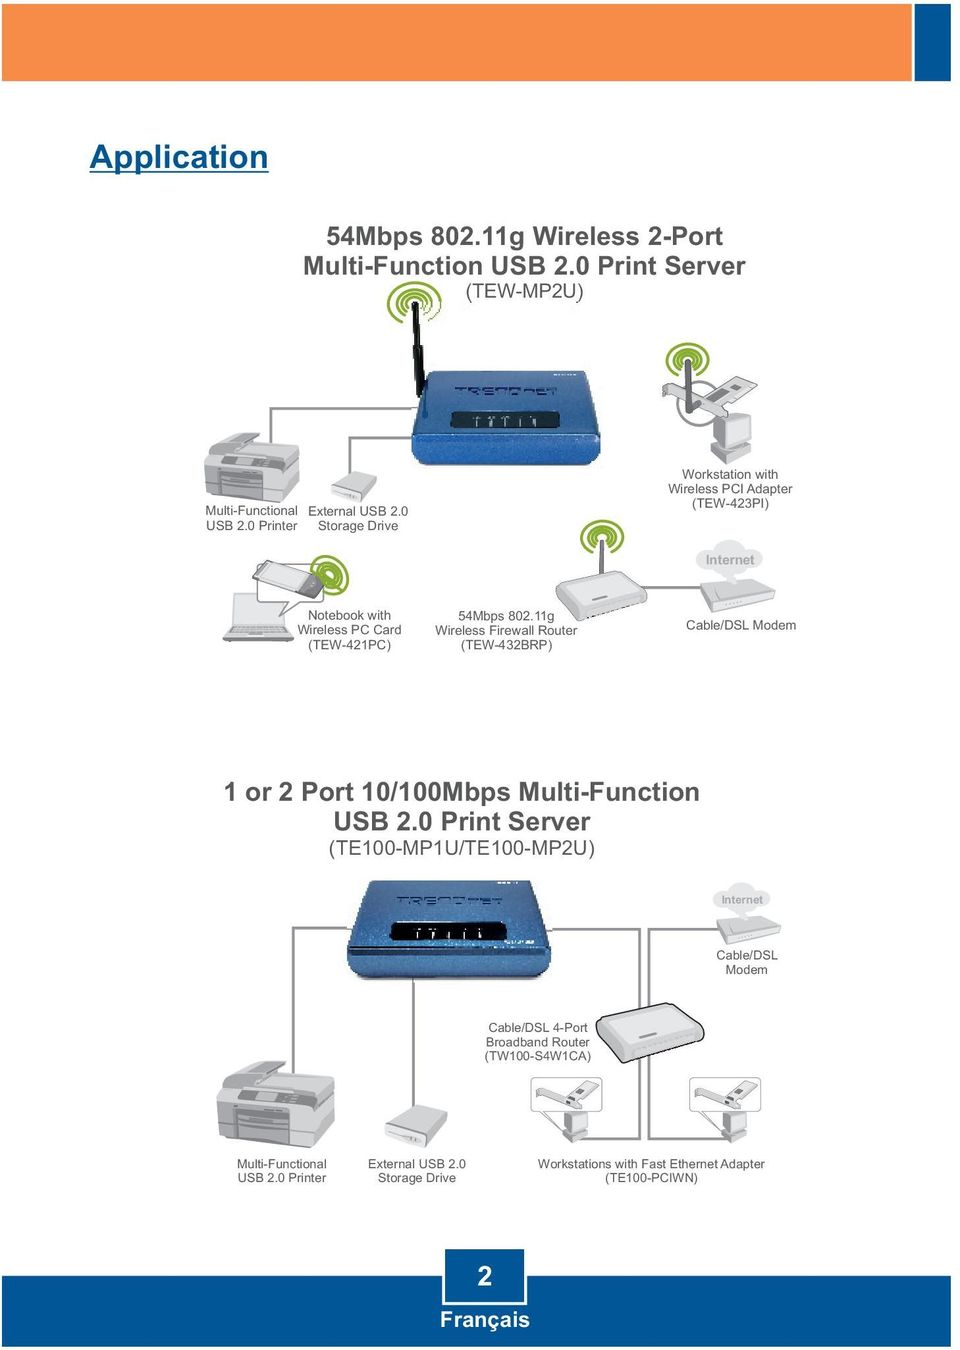 11g Wireless Firewall Router (TEW-432BRP) Cable/DSL Modem 1 or 2 Port 10/100Mbps Multi-Function USB 2.